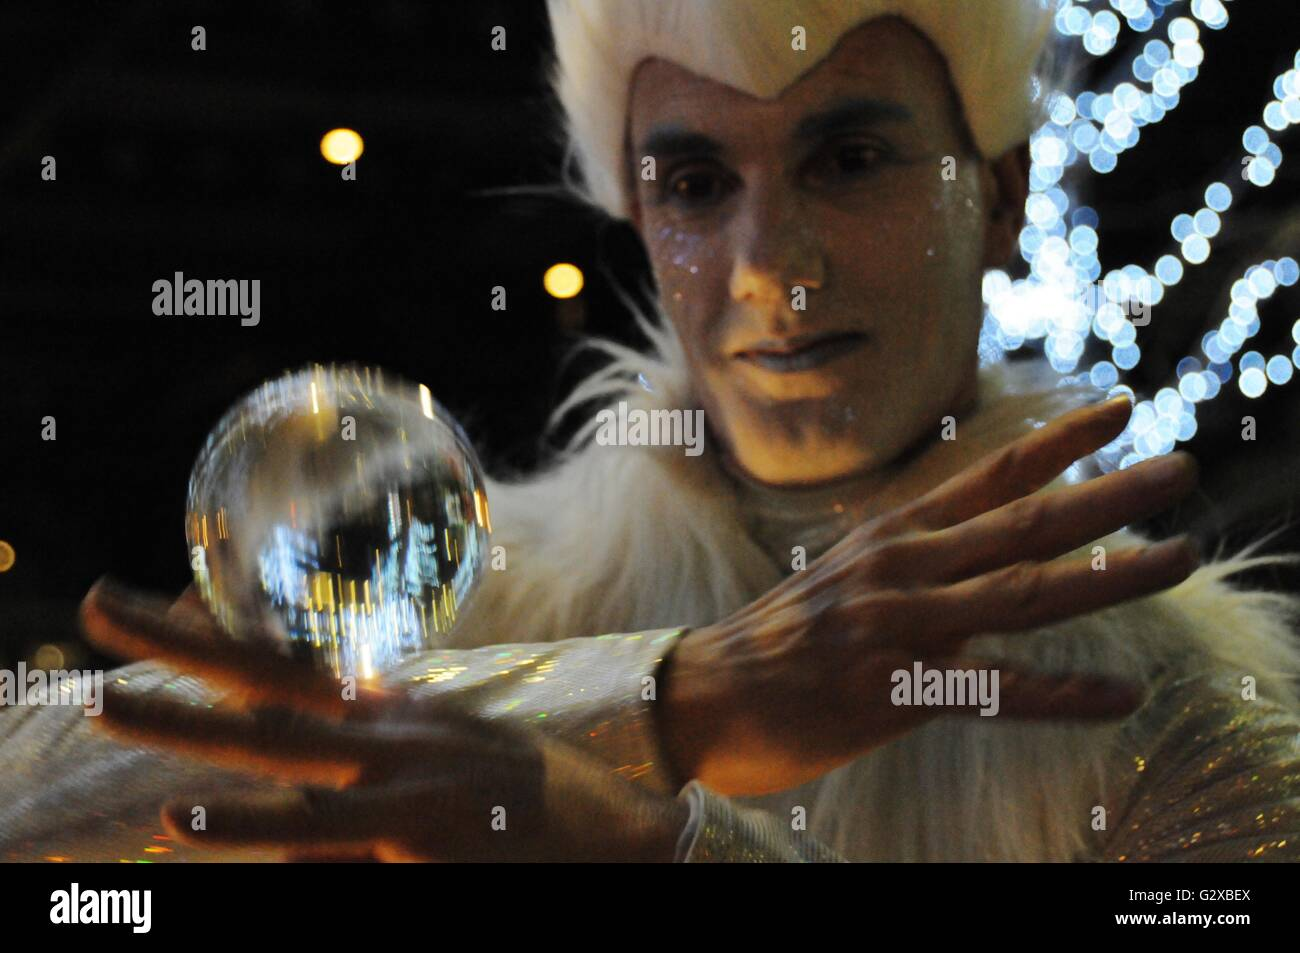 An entertainer rolls a ball across his arm, at the London Frost fair. - Stock Image